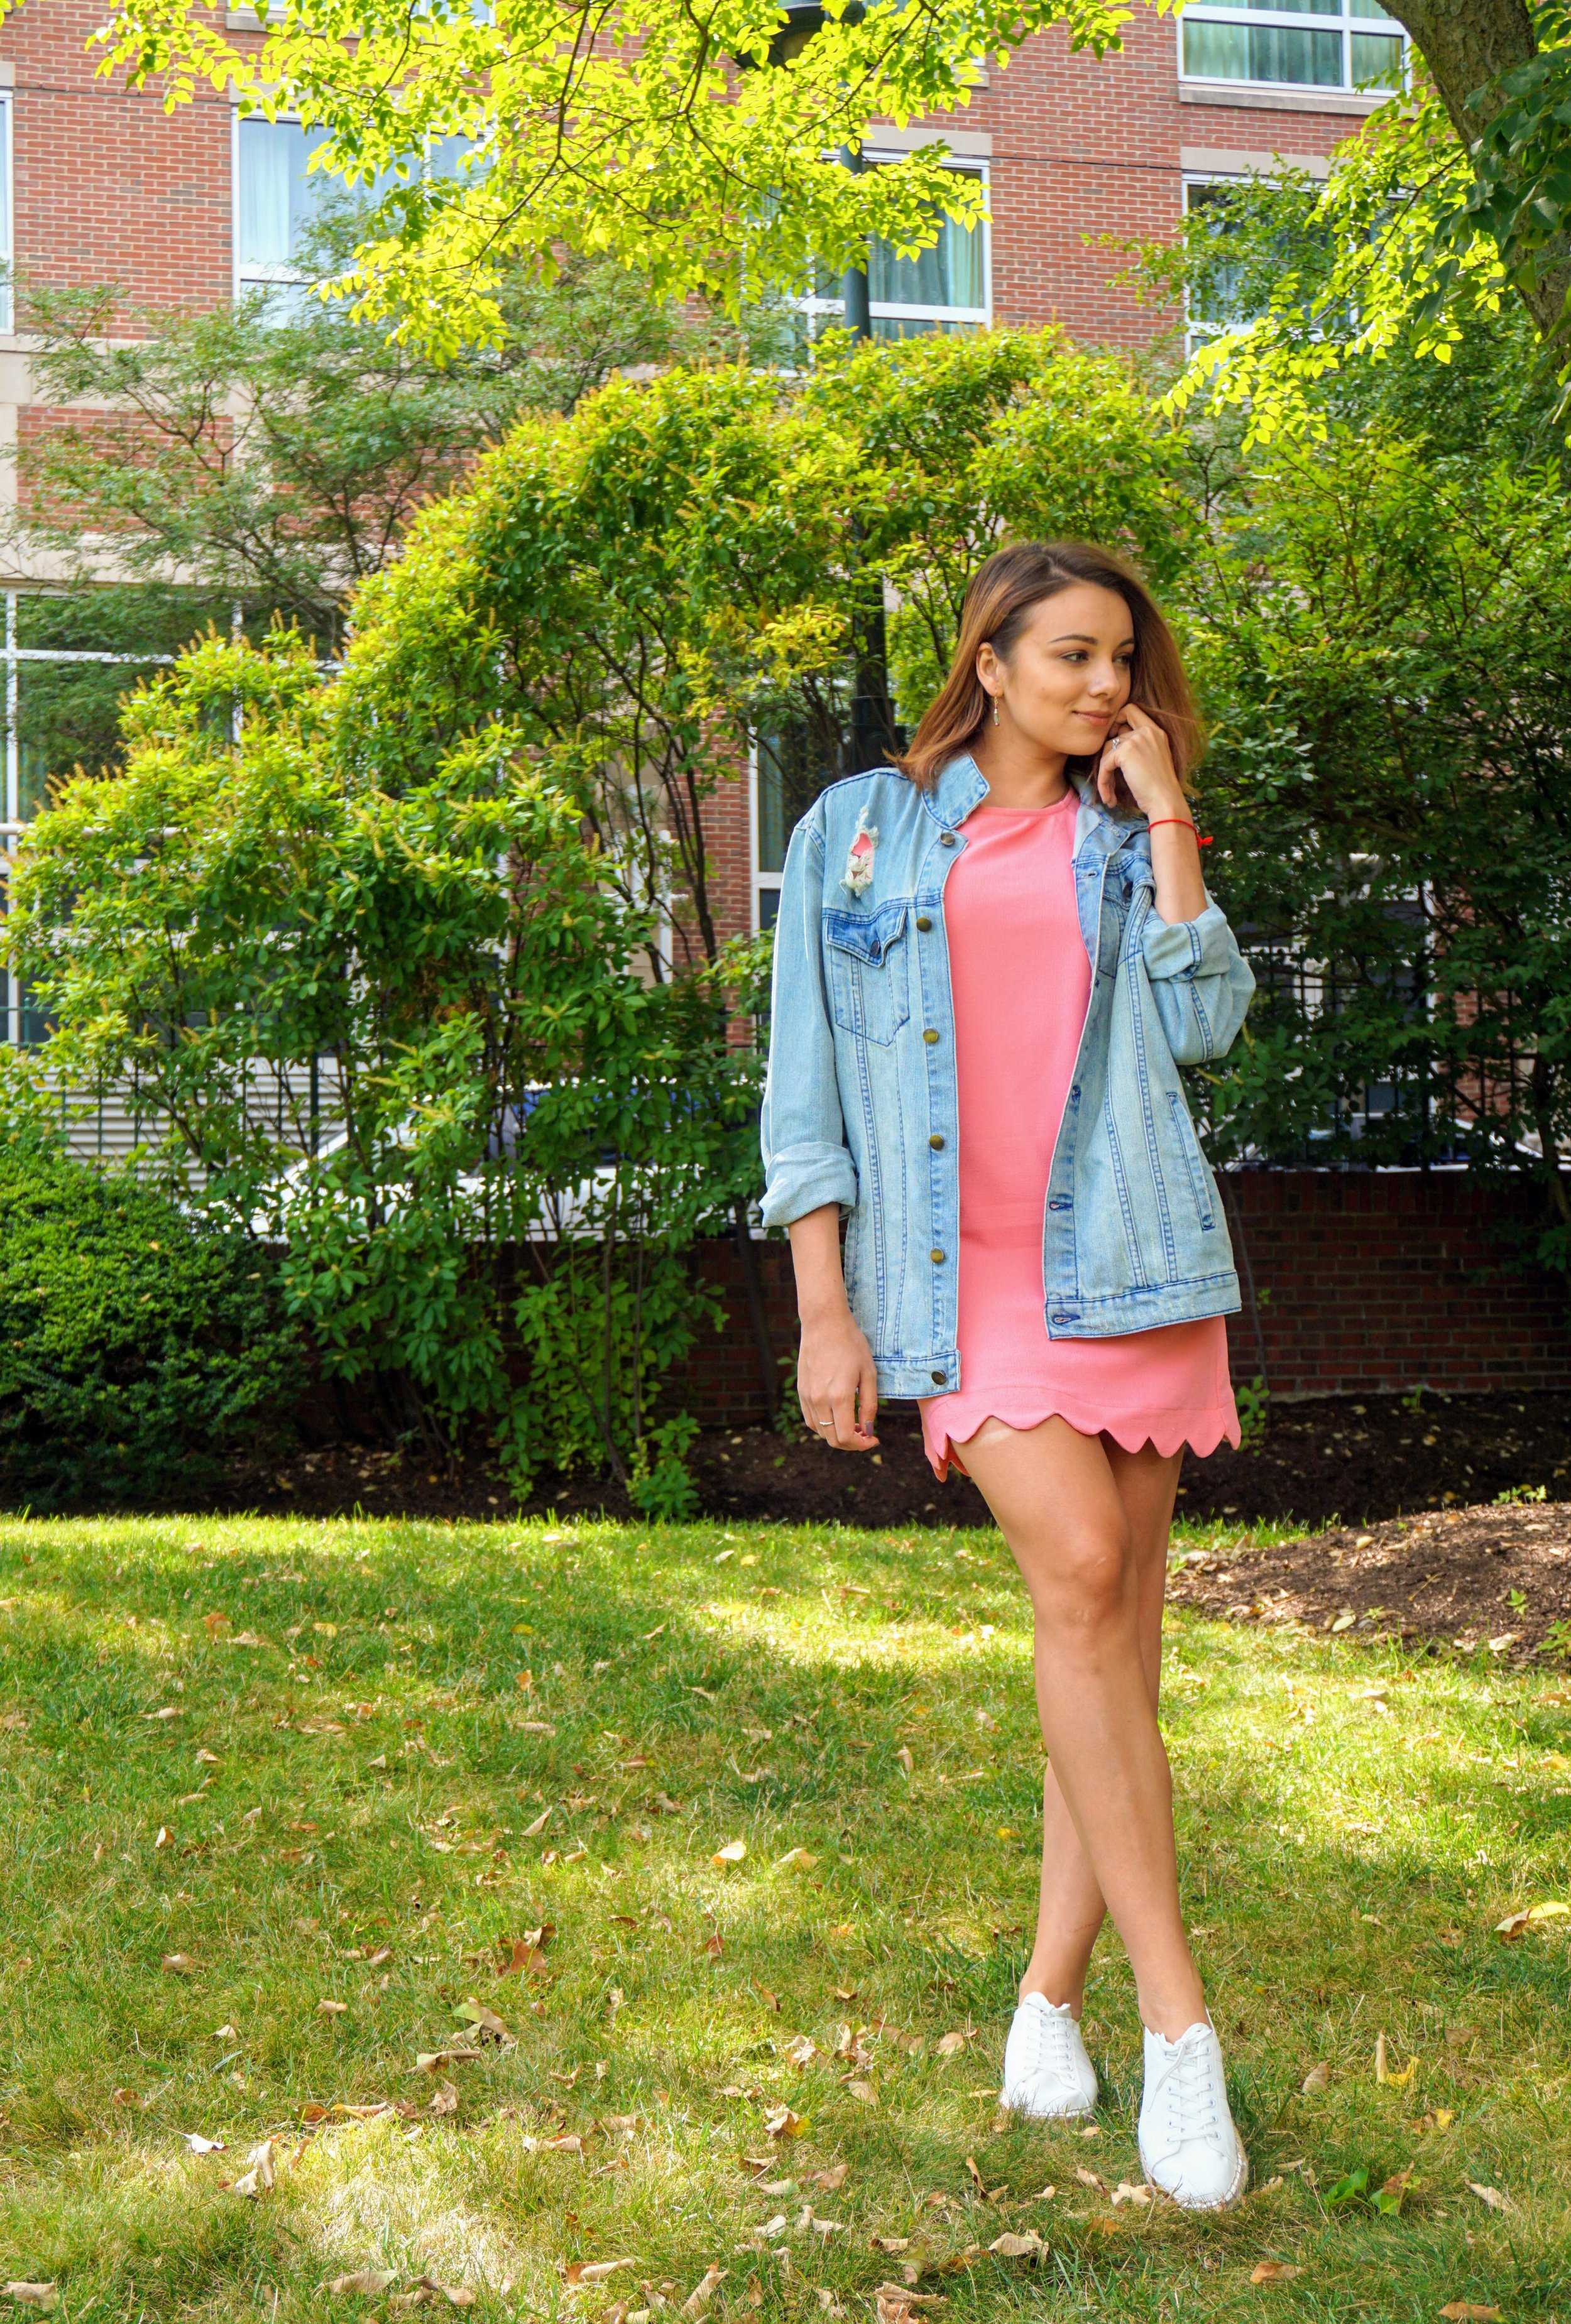 A fashion blogger wearing a pink dress, oversized denim jacket, and white sneakers.